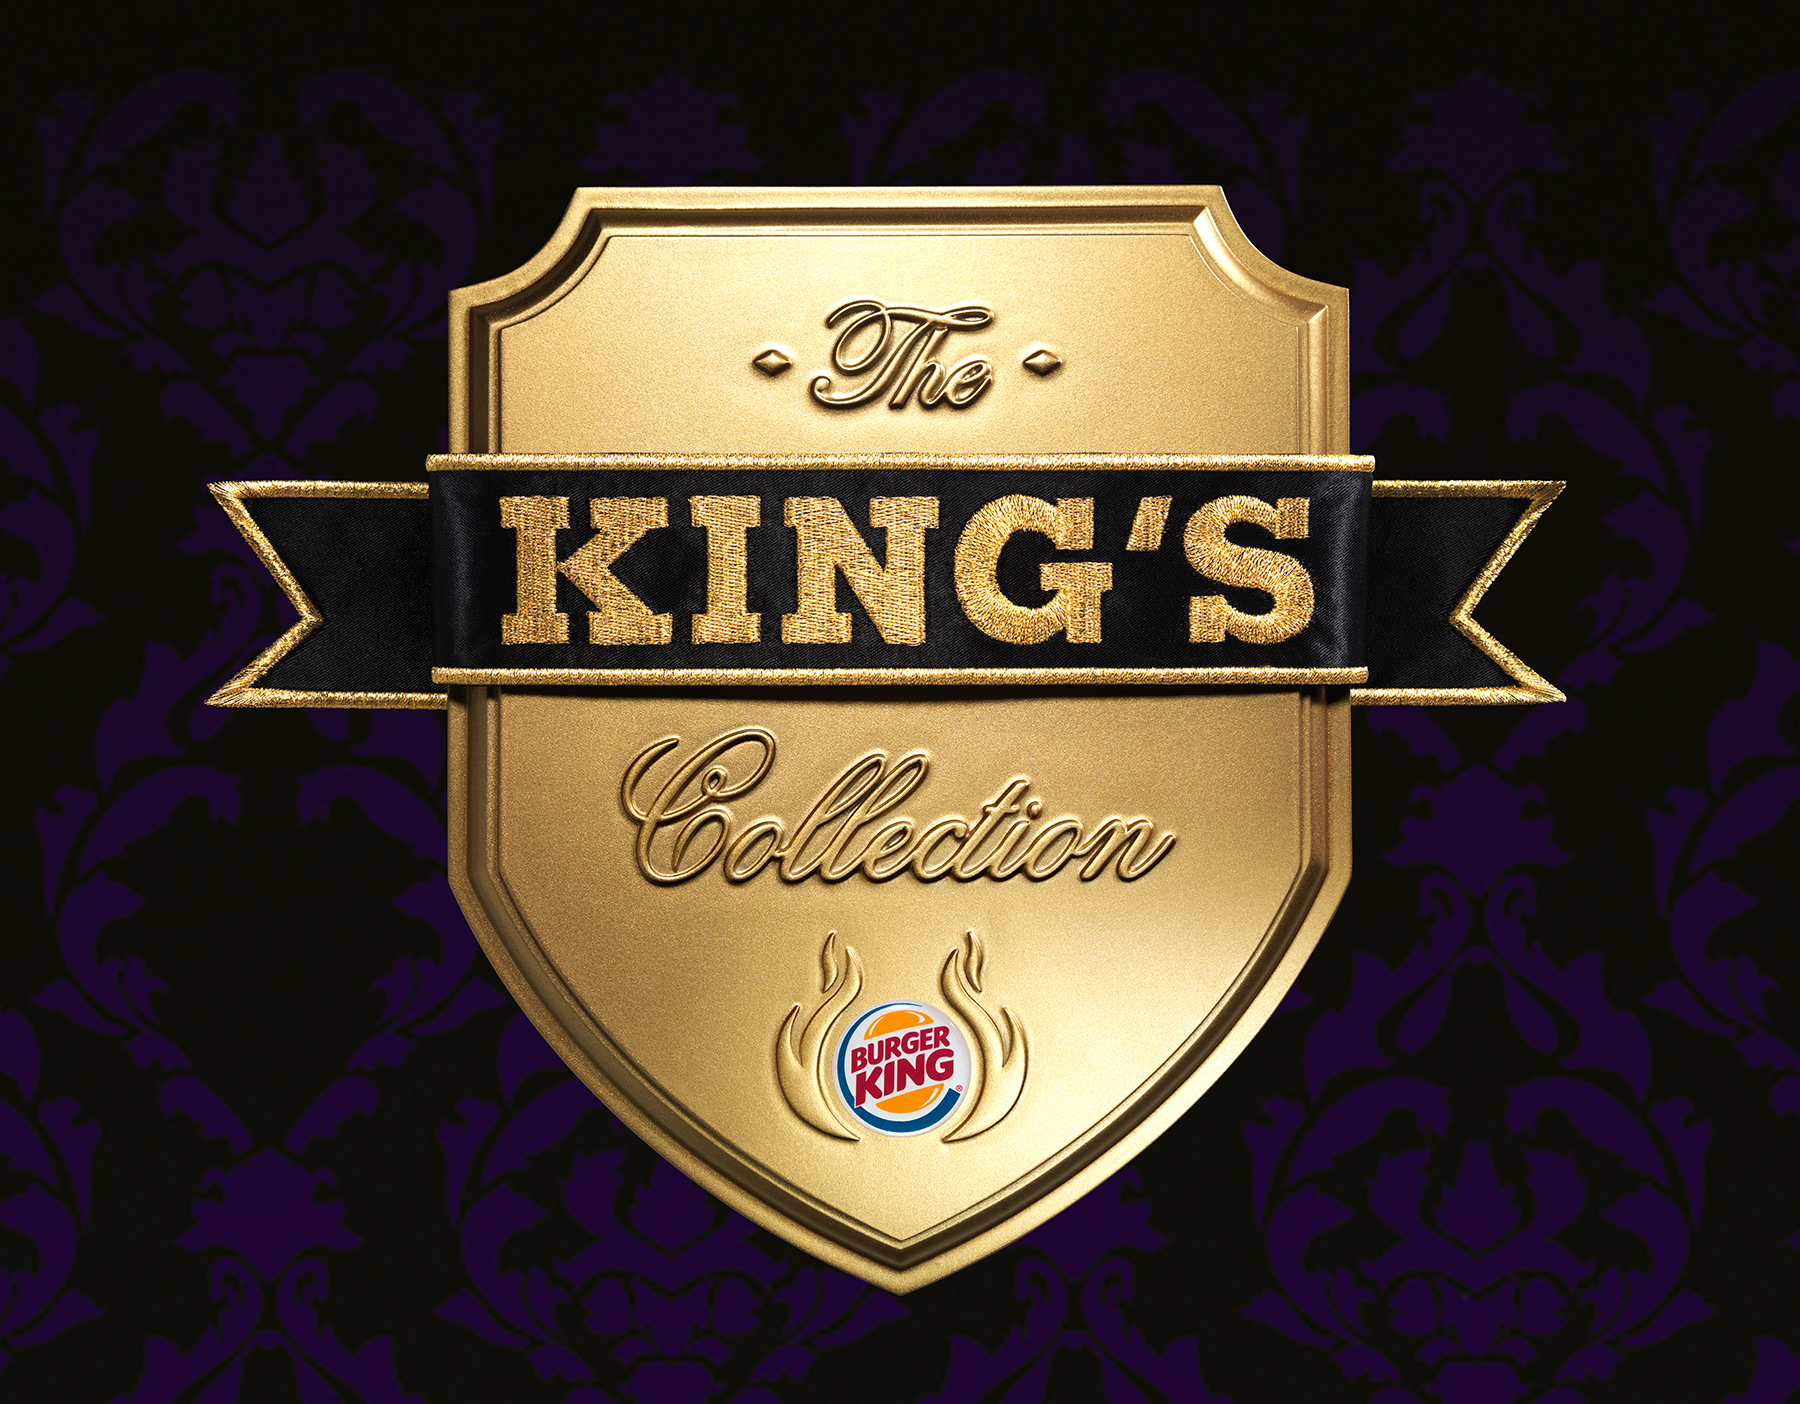 The Burger King KINGS Collection